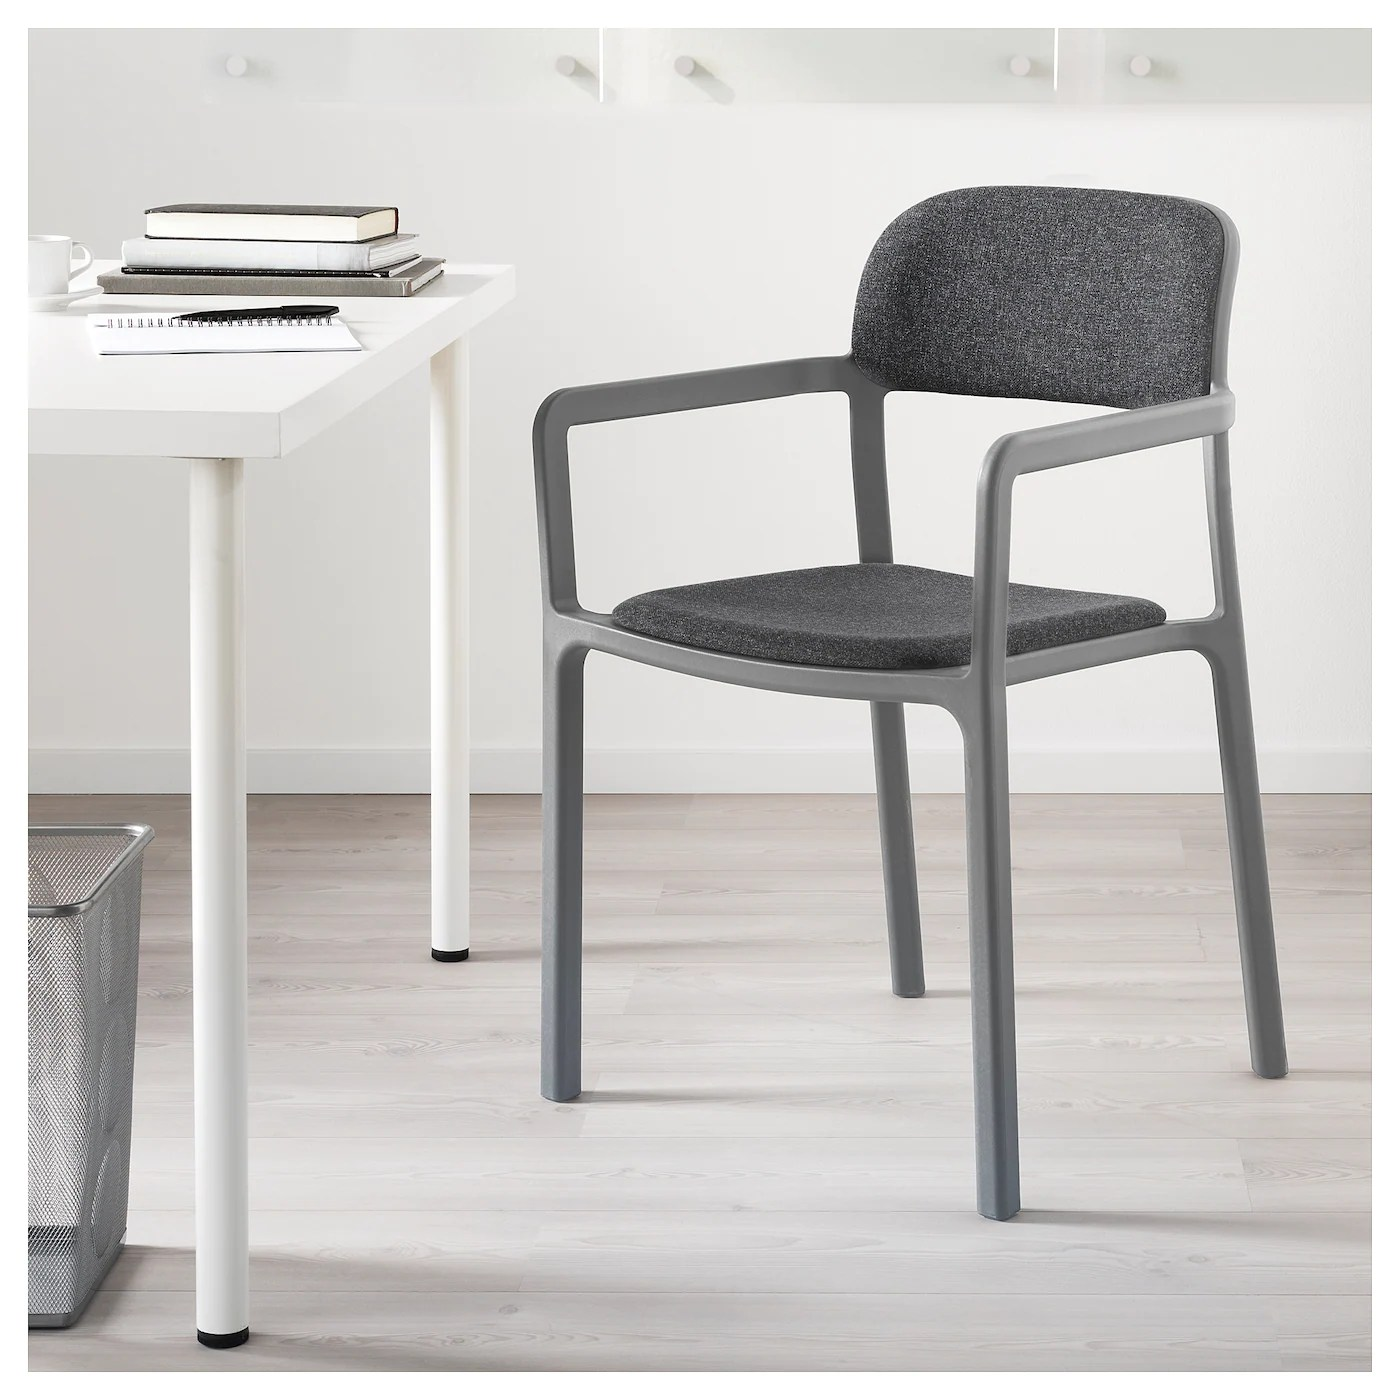 Ikea Bettsofa Ypperlig Ypperlig Chair With Armrests Gunnared Dark Grey Ikea